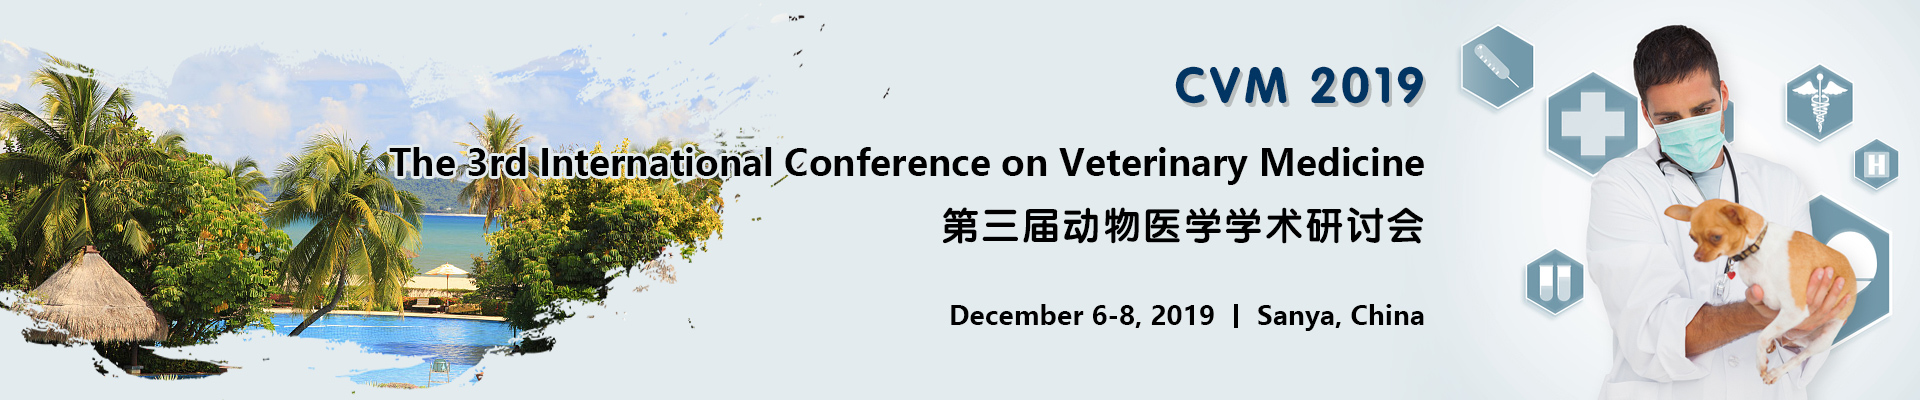 The 3rd International Conference on Veterinary Medicine,2019